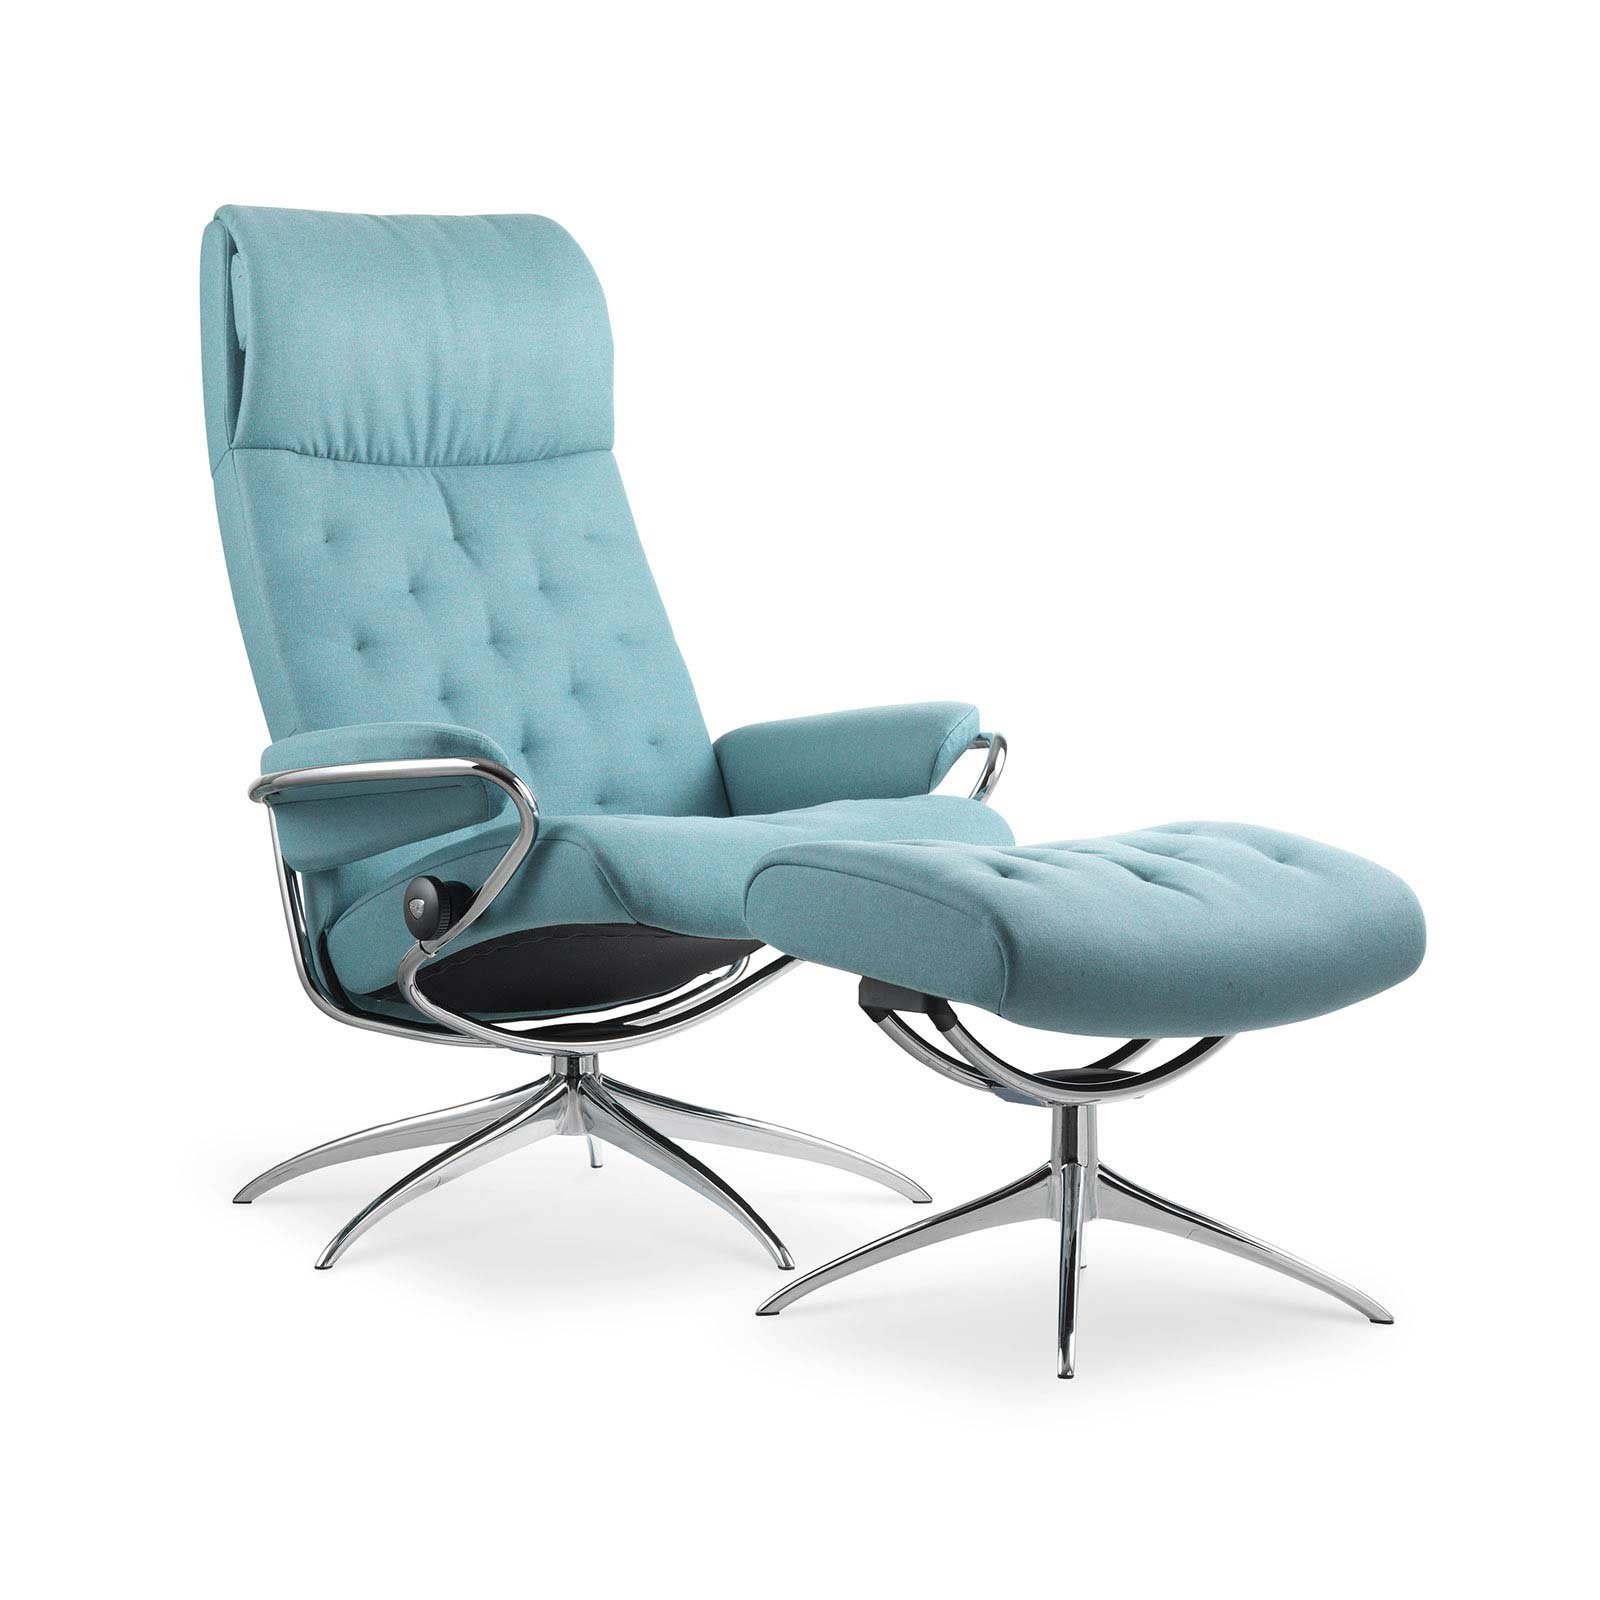 Stressless Sessel Berlin Stressless Metro High Back Calido Aqua Gestell Chrom Hocker